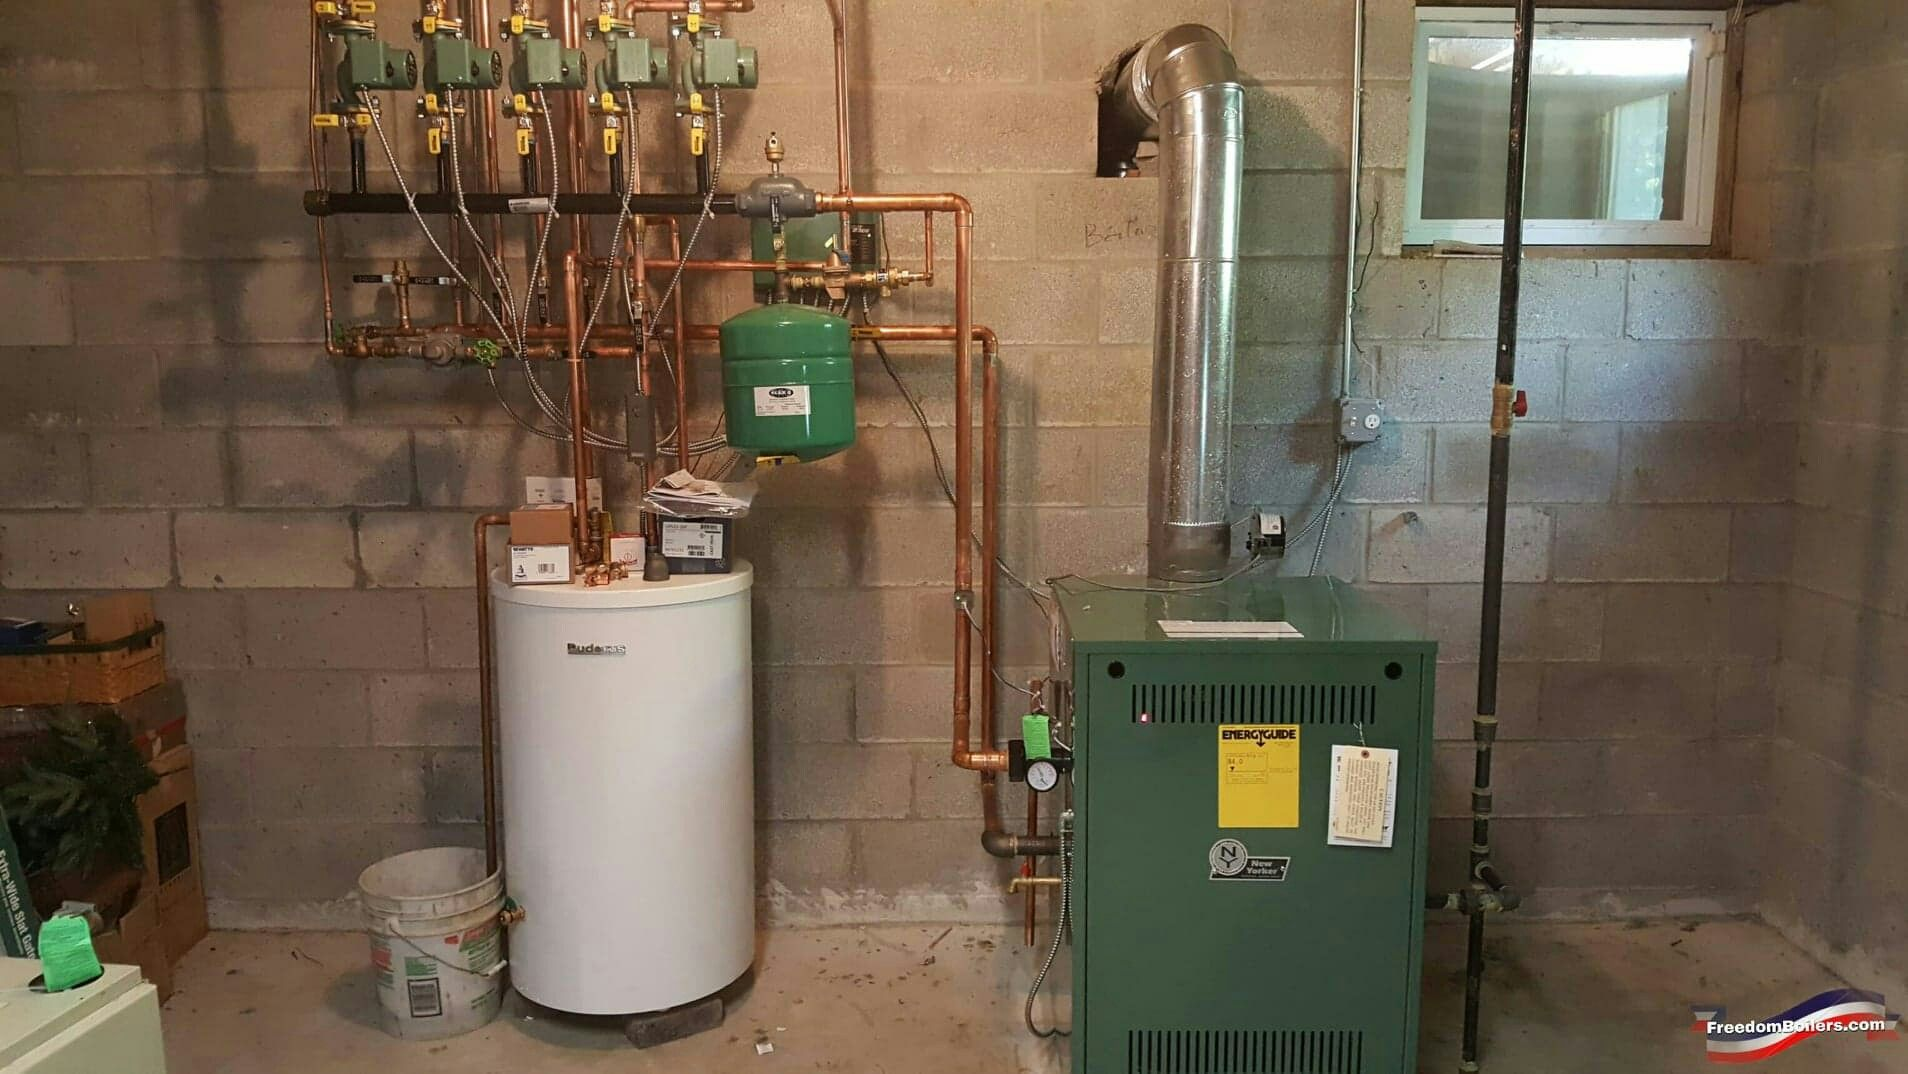 Plumber S Log A Successful Installation Of A Boiler For A New Home Gas Fired Boiler Has D Water Heater Installation Indirect Water Heater Boiler Installation